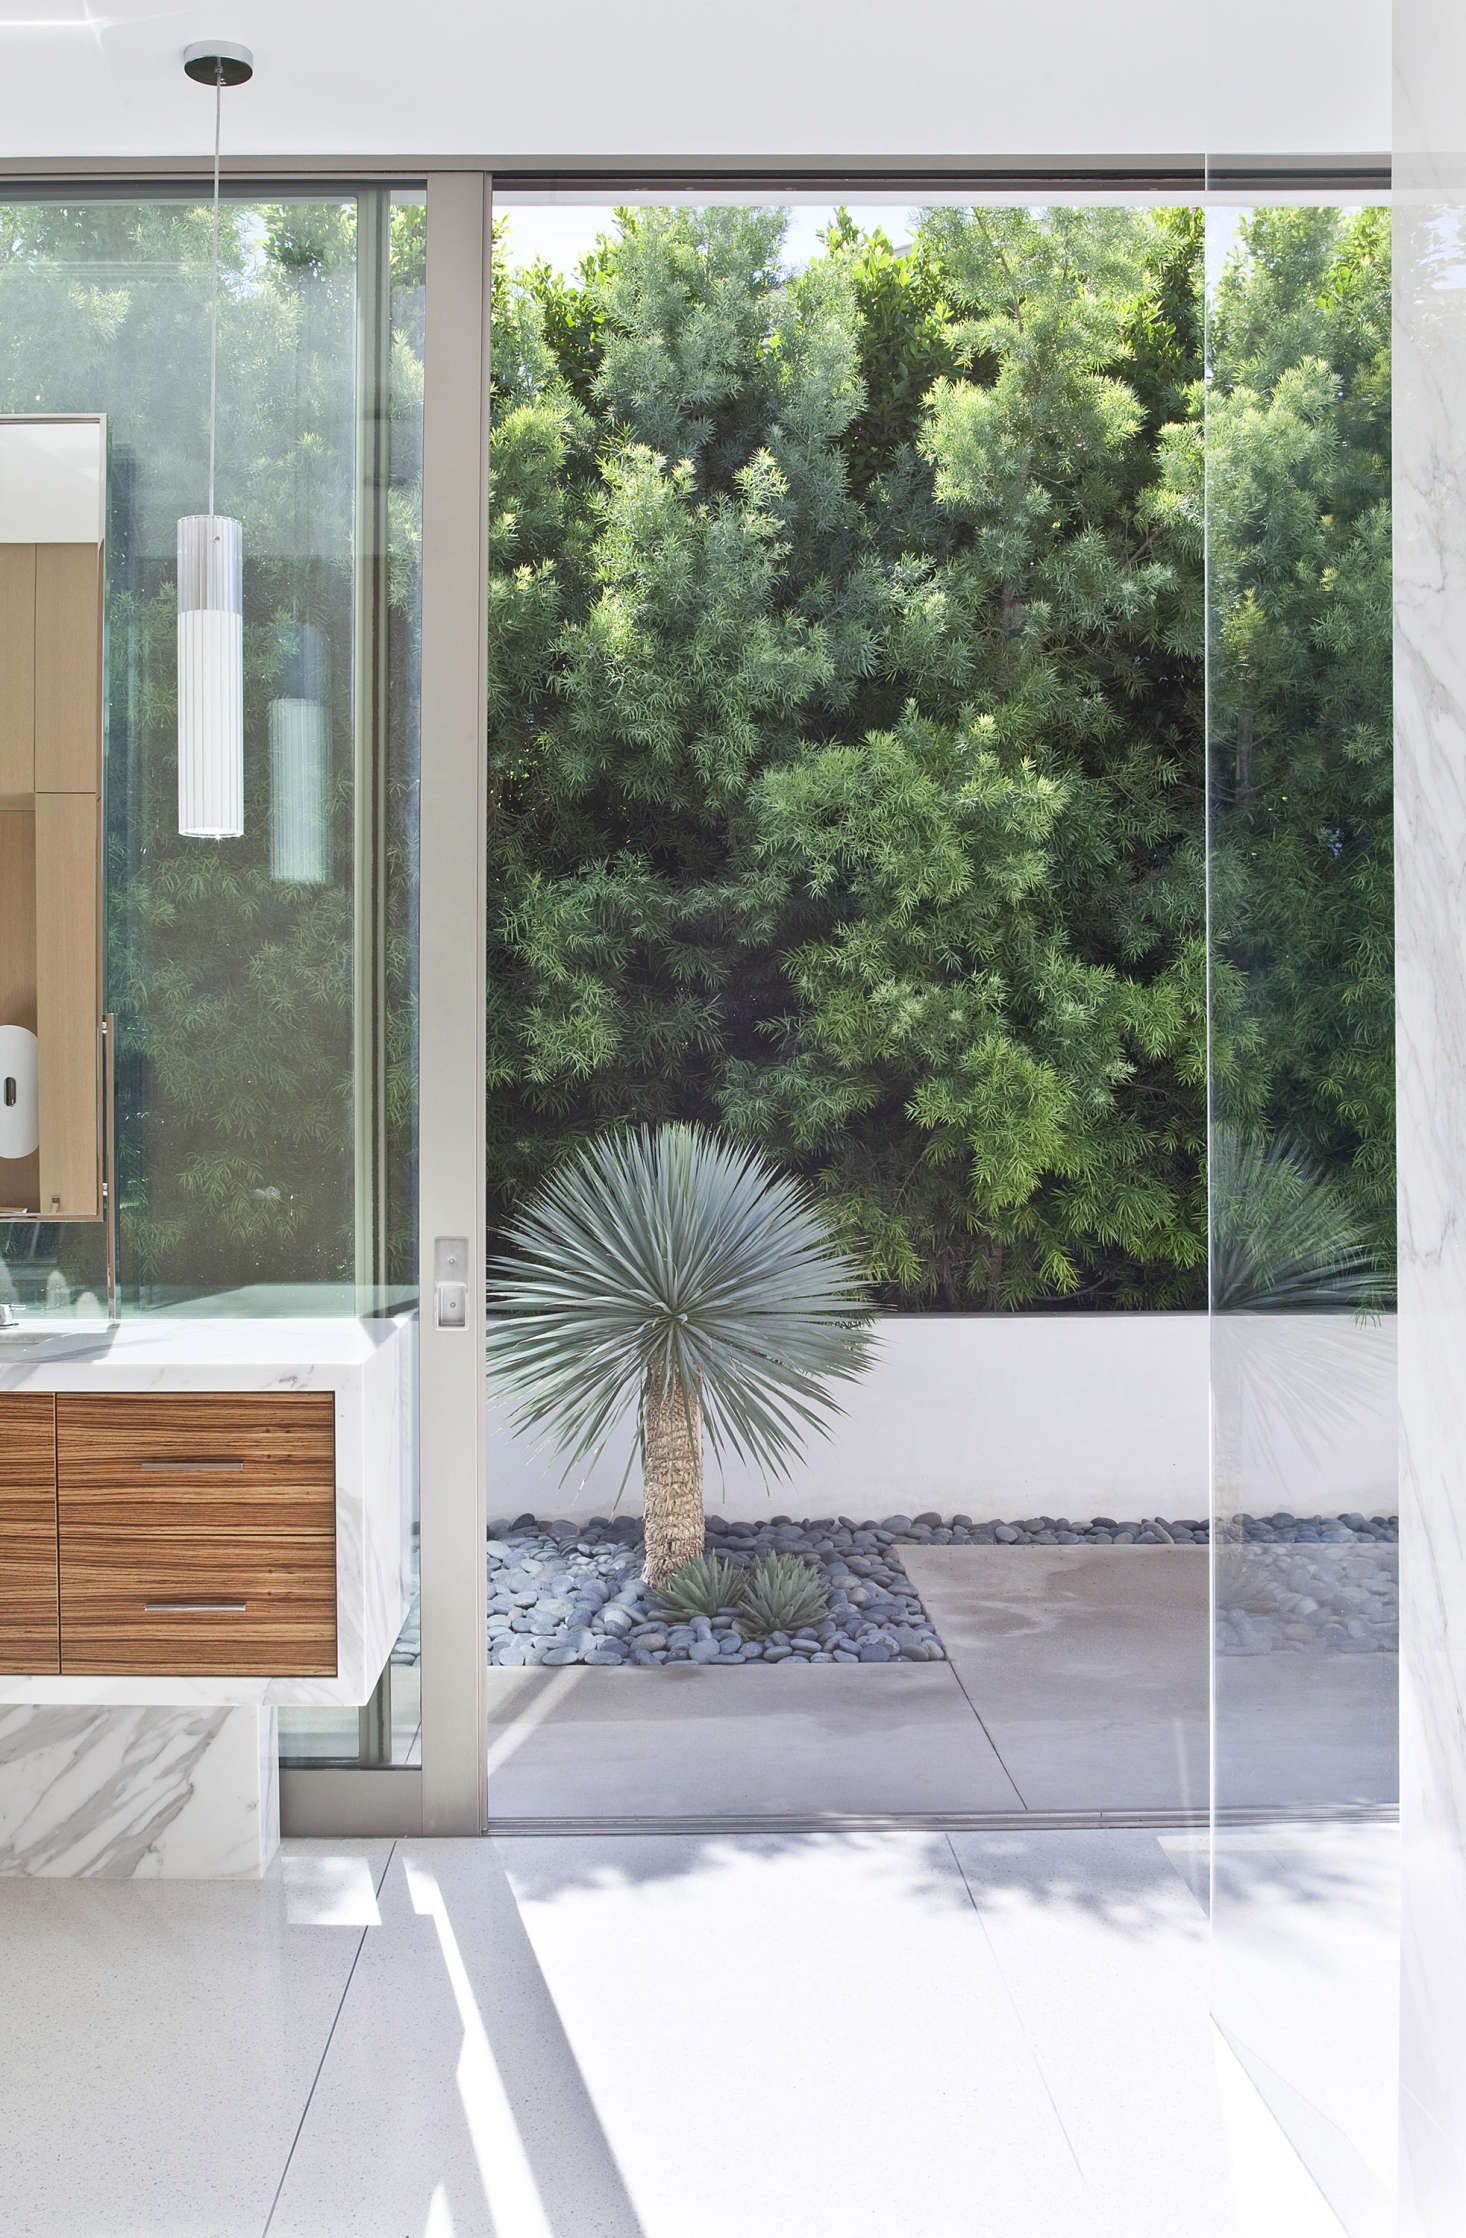 modern-bathroom-with-small-palm-open-to-outdoors